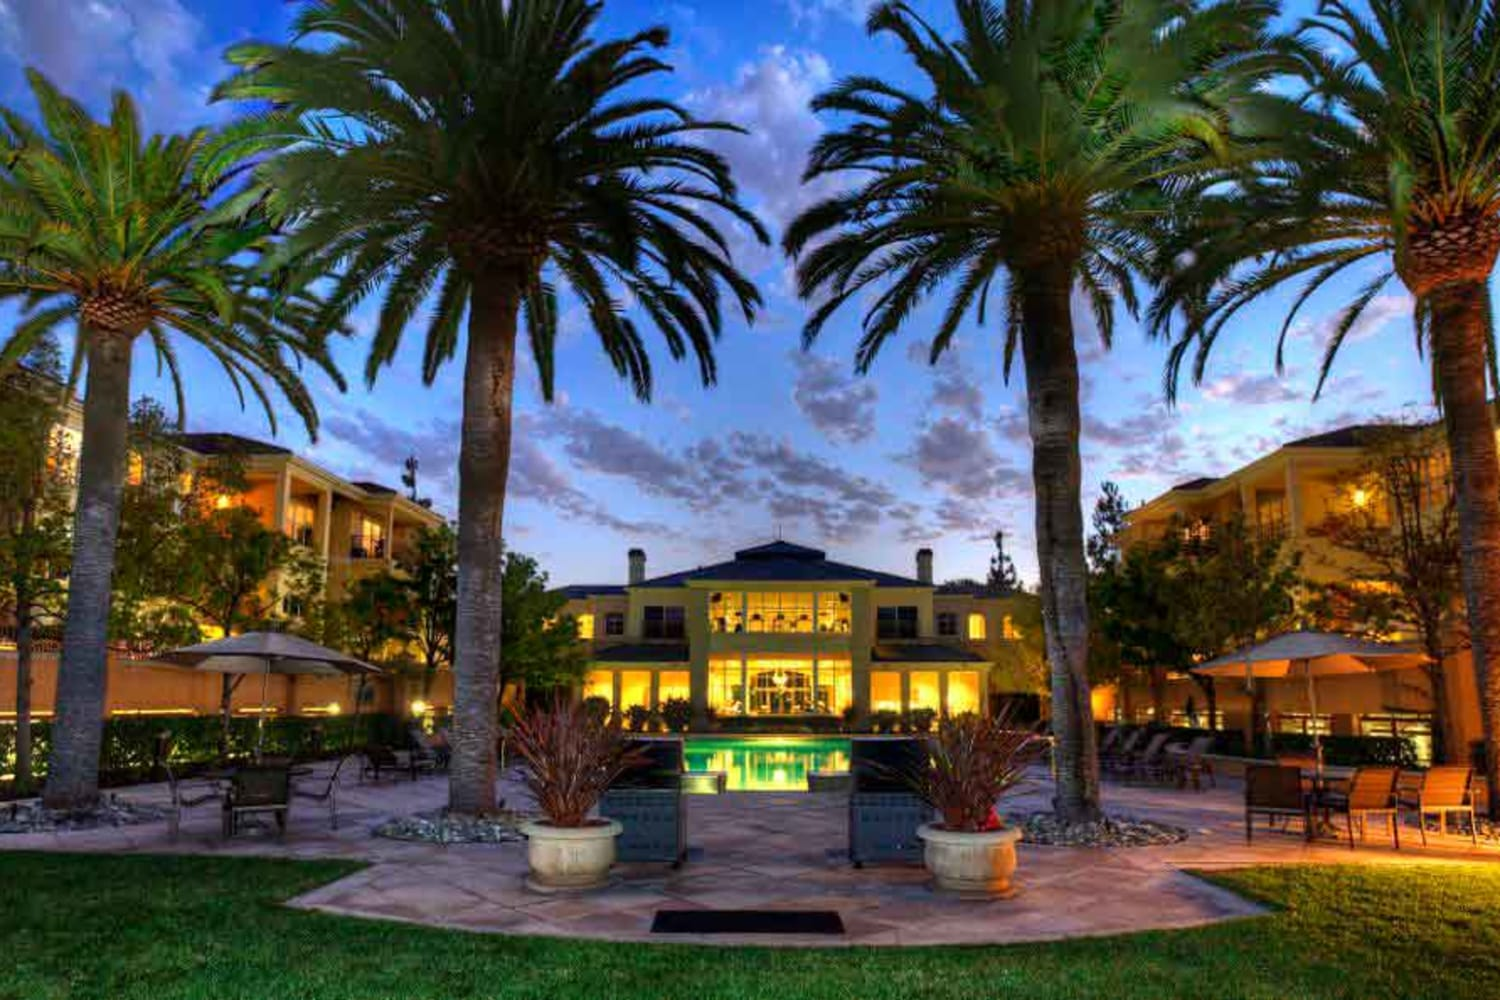 Front entrance and palm trees at dusk at The Carlyle in Santa Clara, California